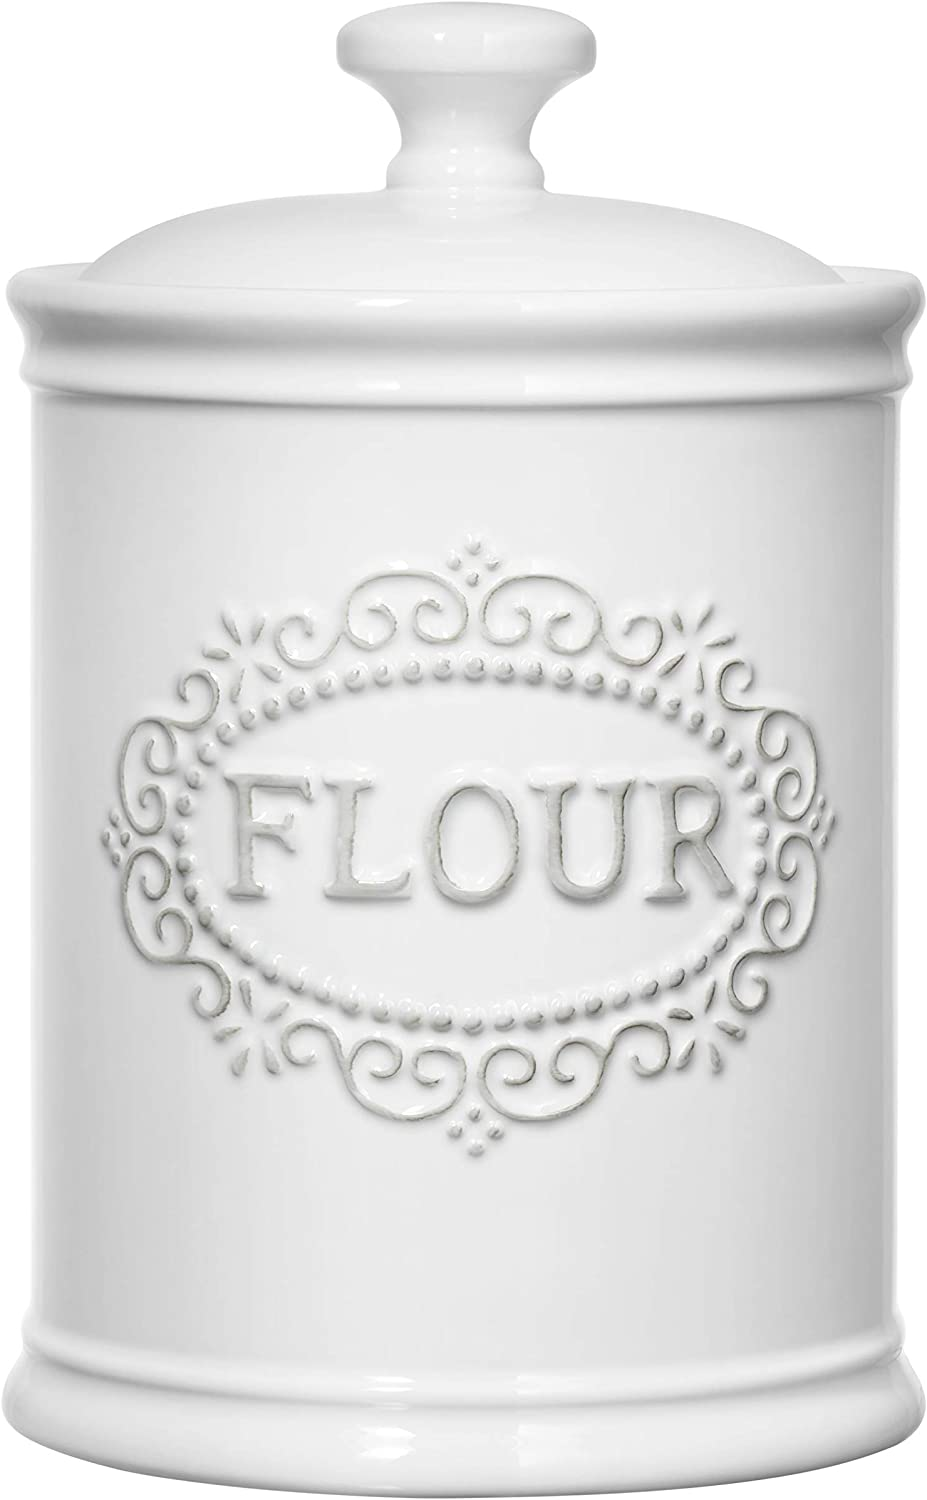 Flour Container Airtight, Porcelain Kitchen Storage Containers Flour Canister Farmhouse Kitchen Decor, Ceramic Storage Jar With Lid White, TAWCHES